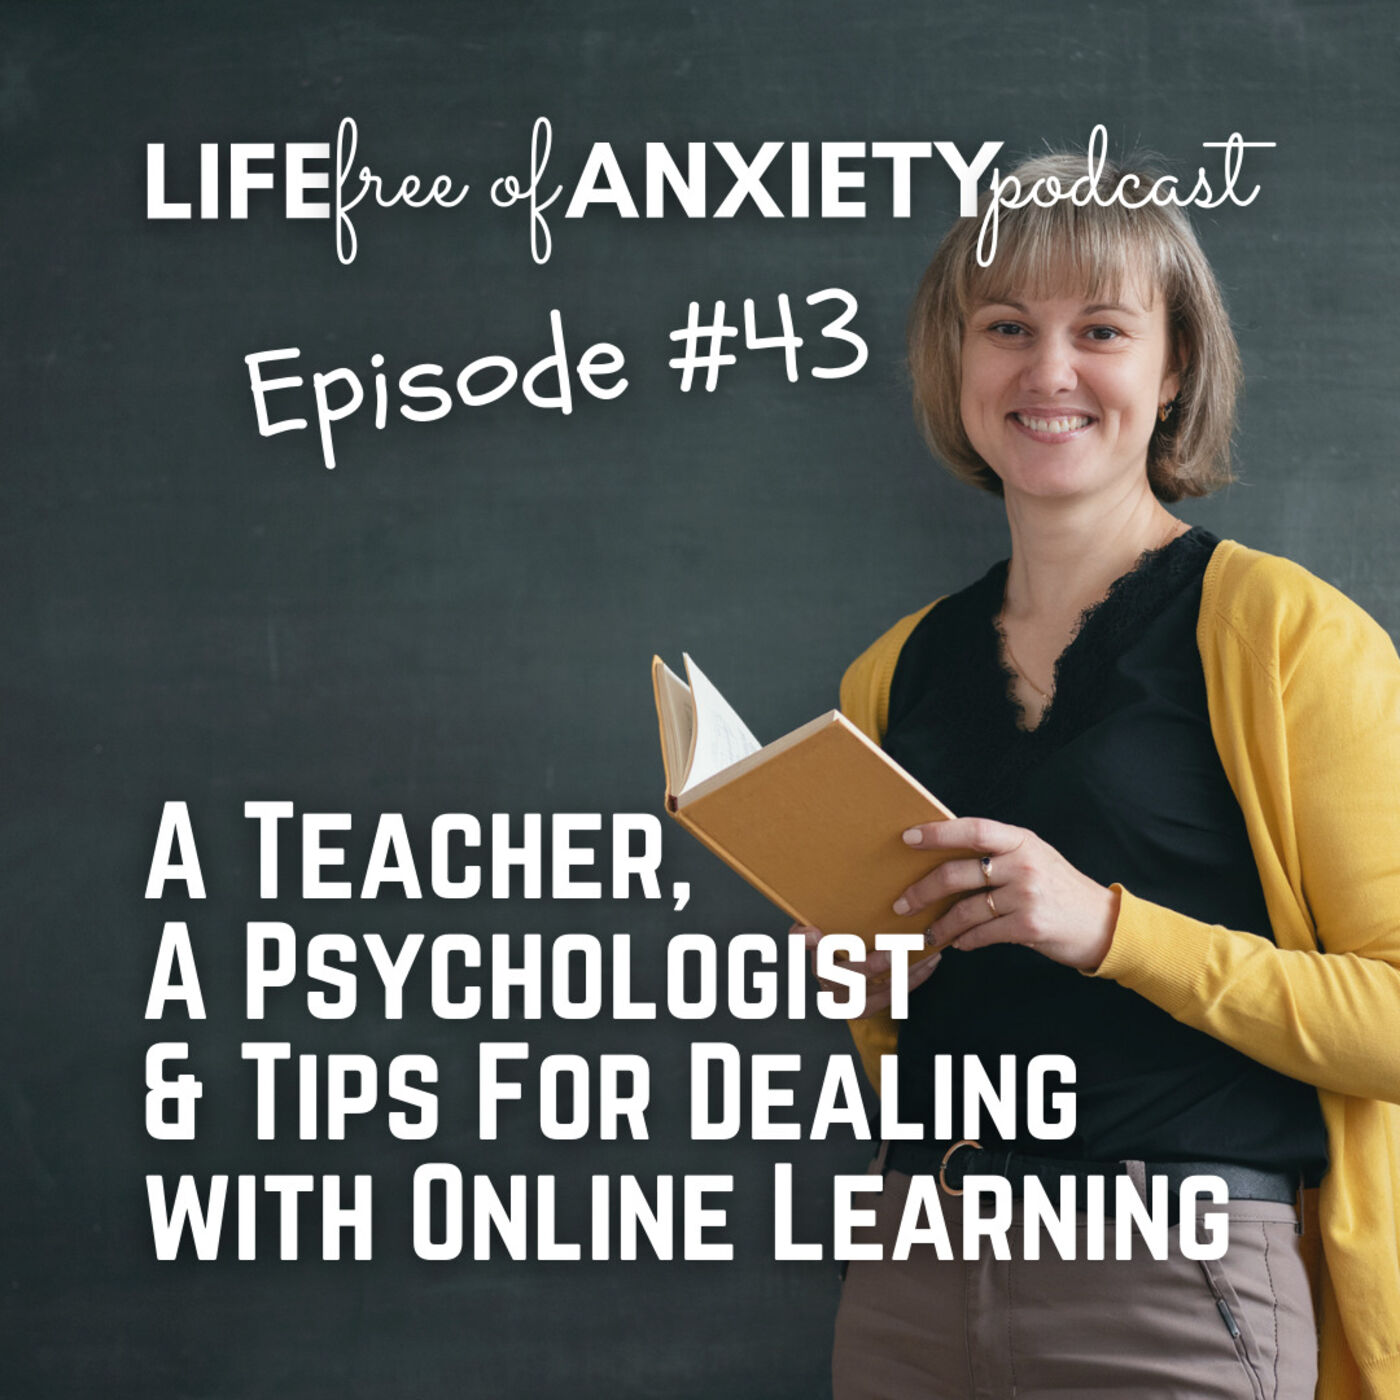 43-A Teacher, A Psychologist, and Tips for Dealing with Online Learning!